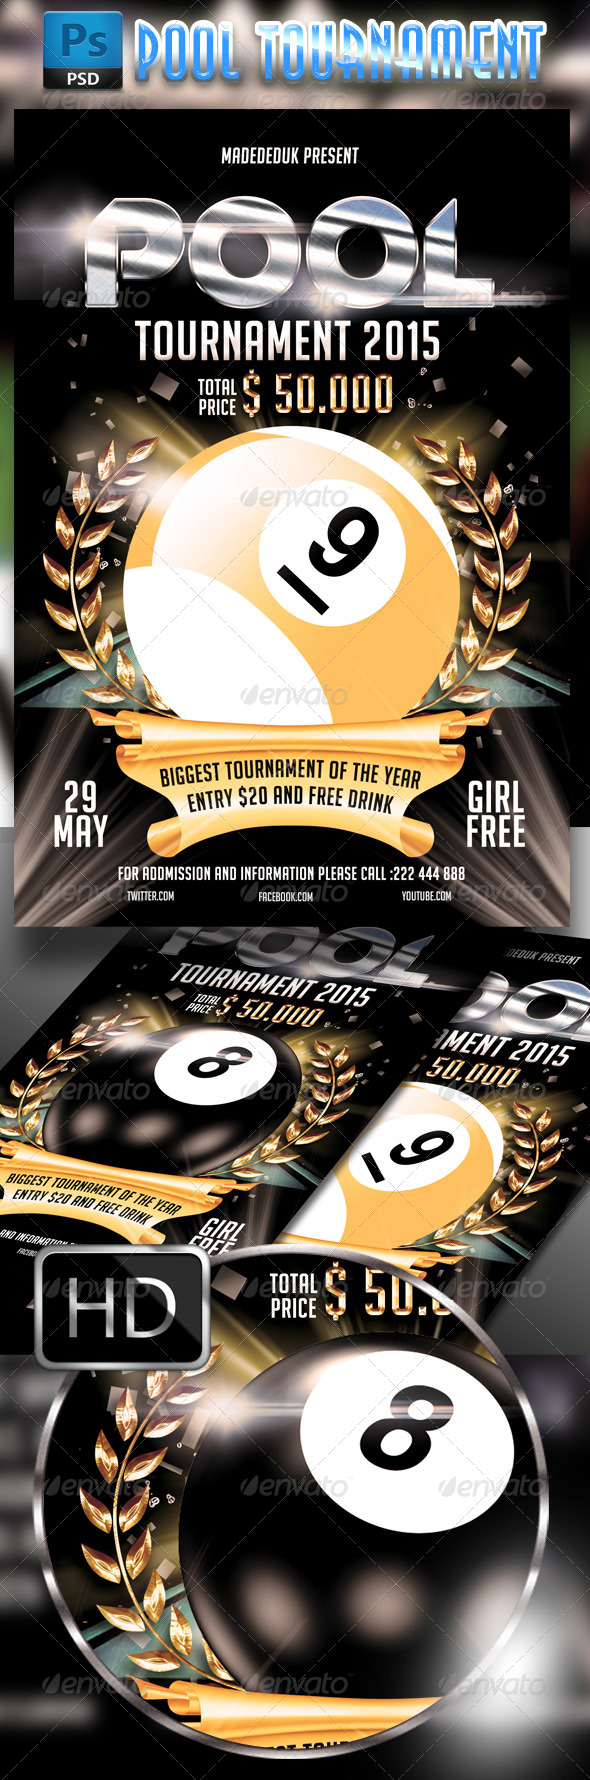 Pool Tournament 2015 Flyer Template by MadeDeduk | GraphicRiver